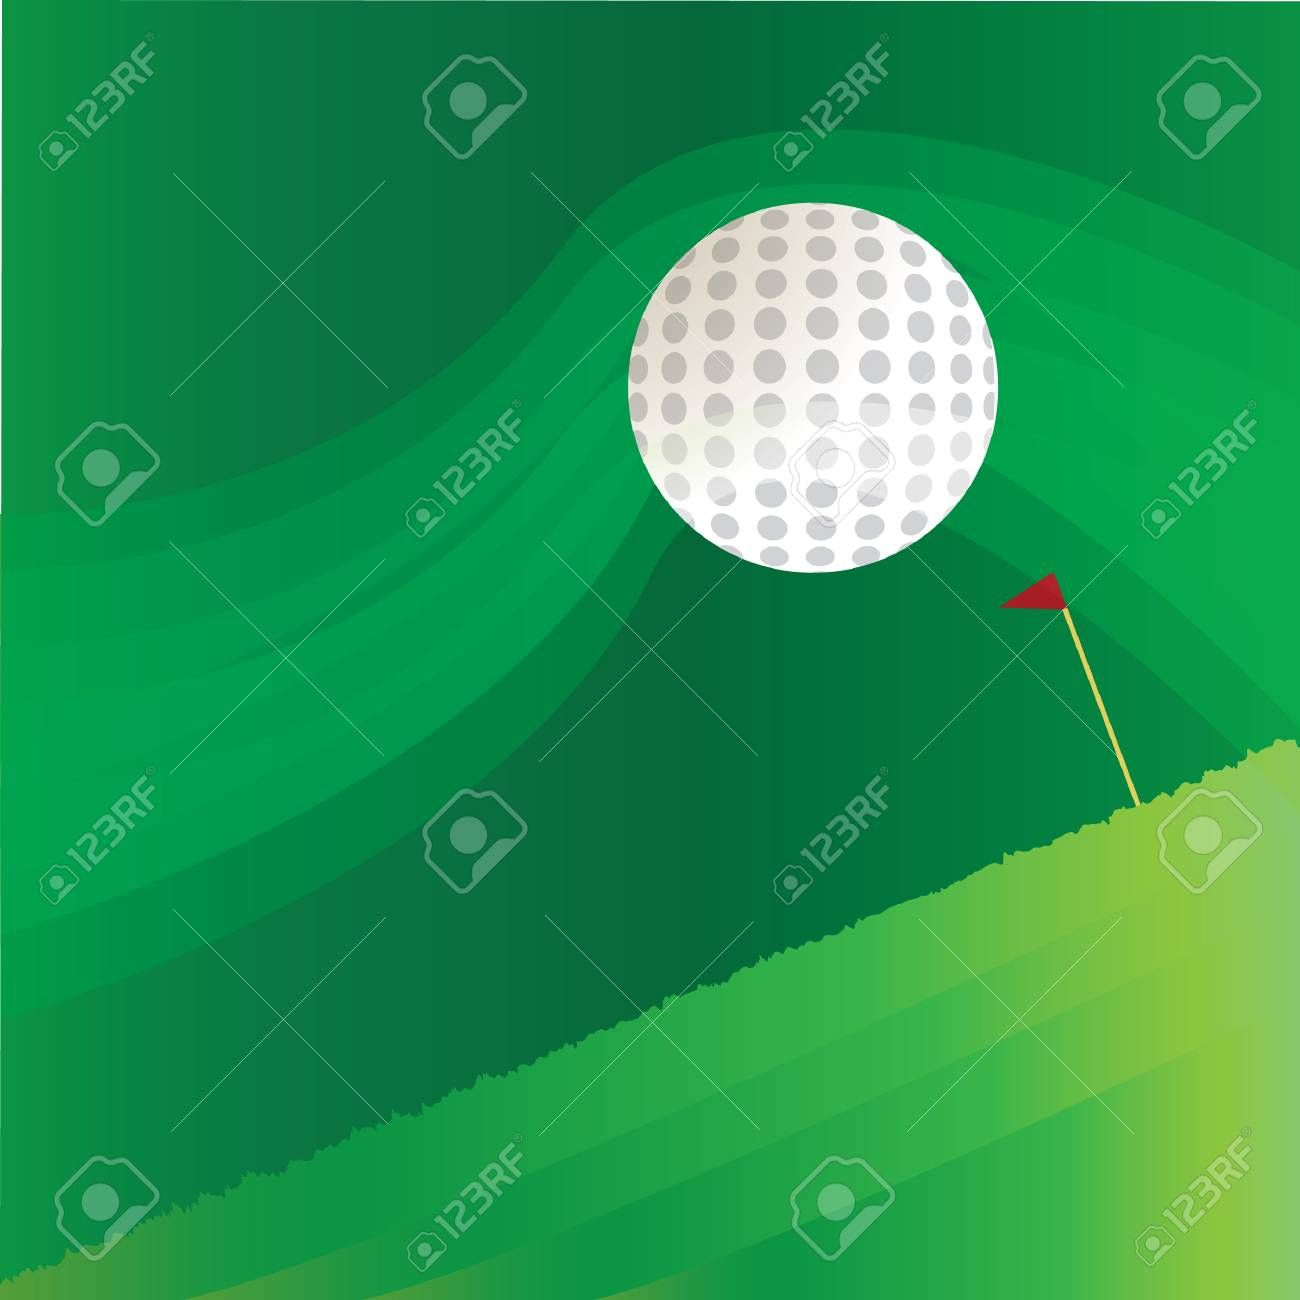 Golf Flag Stick And Ball On Abstract Background Illustration Ad Stick Flag Golf Ball Illustration In 2020 Golf Flag Abstract Backgrounds Vector Graphics